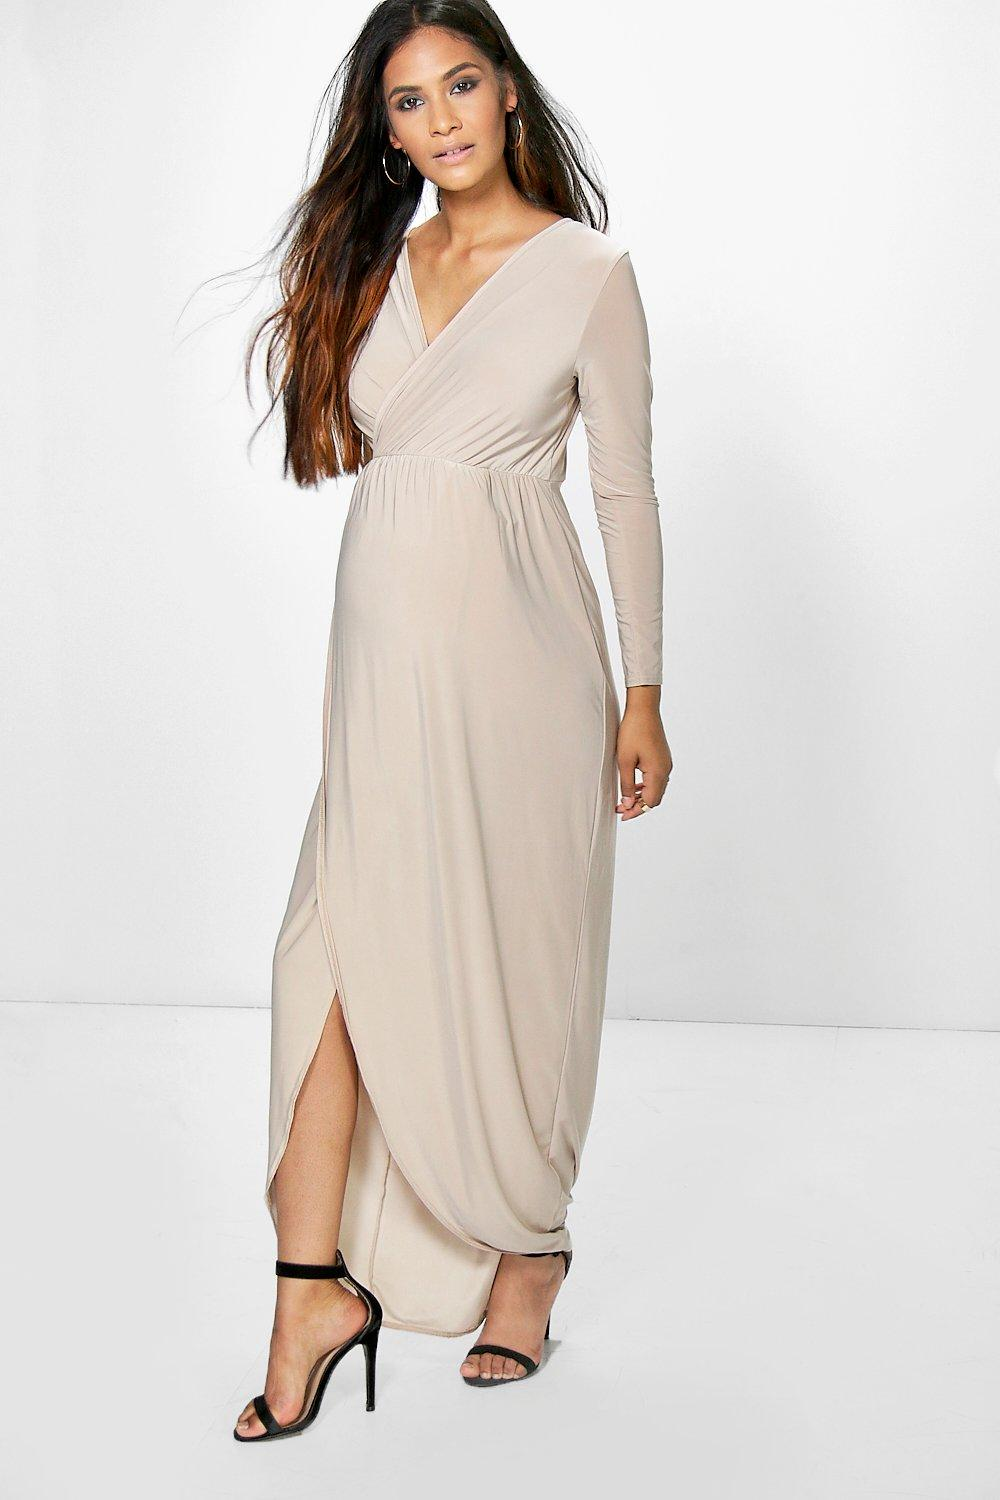 Wrap maternity maxi dress with ¾ sleeve made of soft, stretchy, yet Women's Cowl Neck and Over The Shoulder Ruched Maternity and Nursing Dress by. by Mother Bee. $ - $ $ 25 $ 35 99 Prime. FREE Shipping on eligible orders. Some sizes/colors are Prime eligible. out of 5 stars 1,